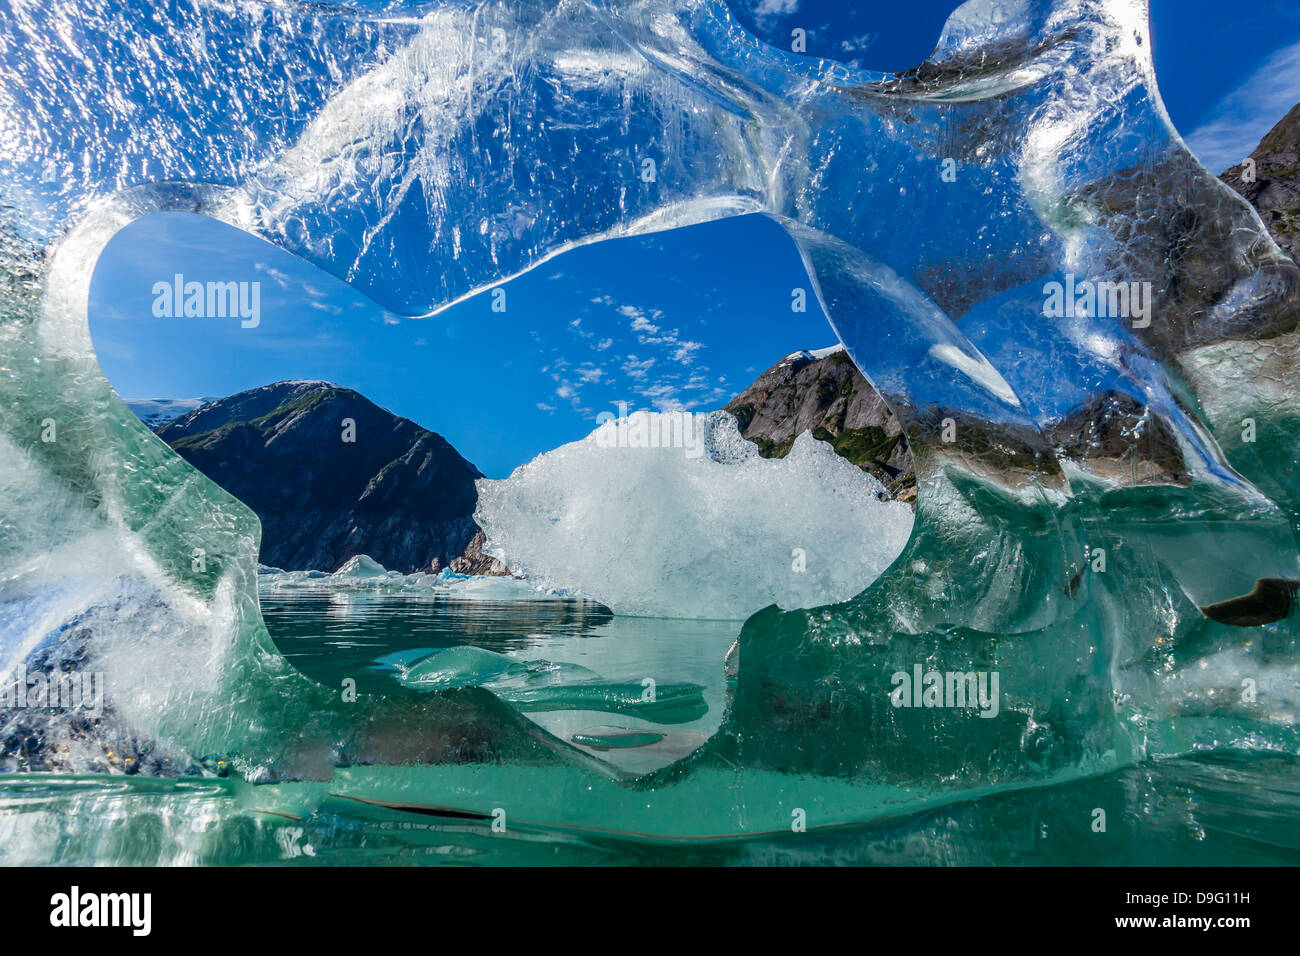 Glacial ice calved from the Sawyer Glacier, Williams Cove, Tracy Arm-Ford's Terror Wilderness Area, Southeast Alaska, Stock Photo